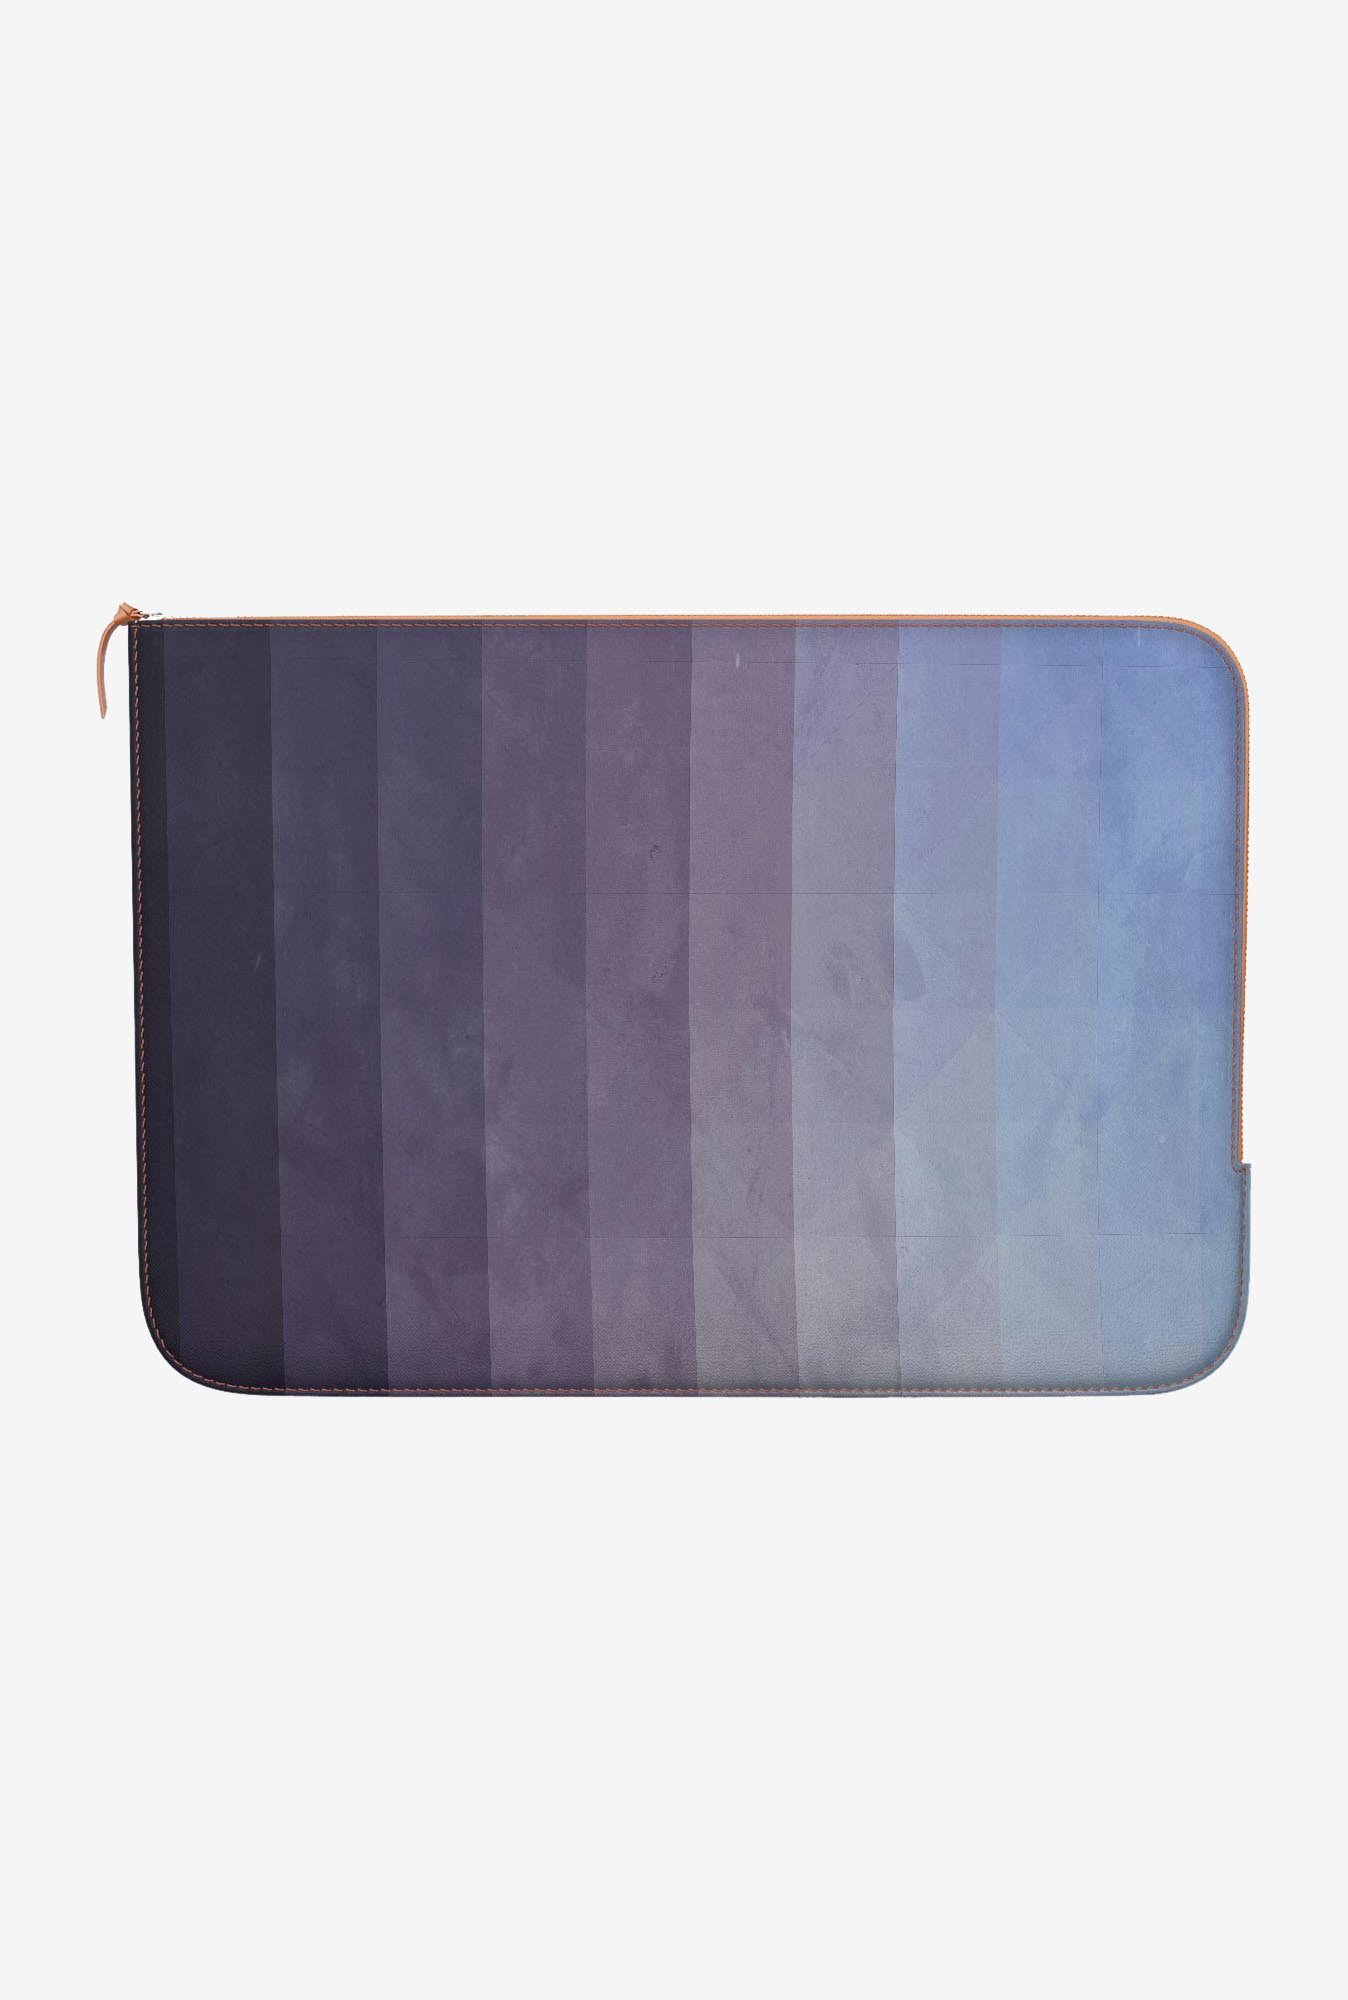 "DailyObjects Myssyng Yww Macbook Air 11"" Zippered Sleeve"